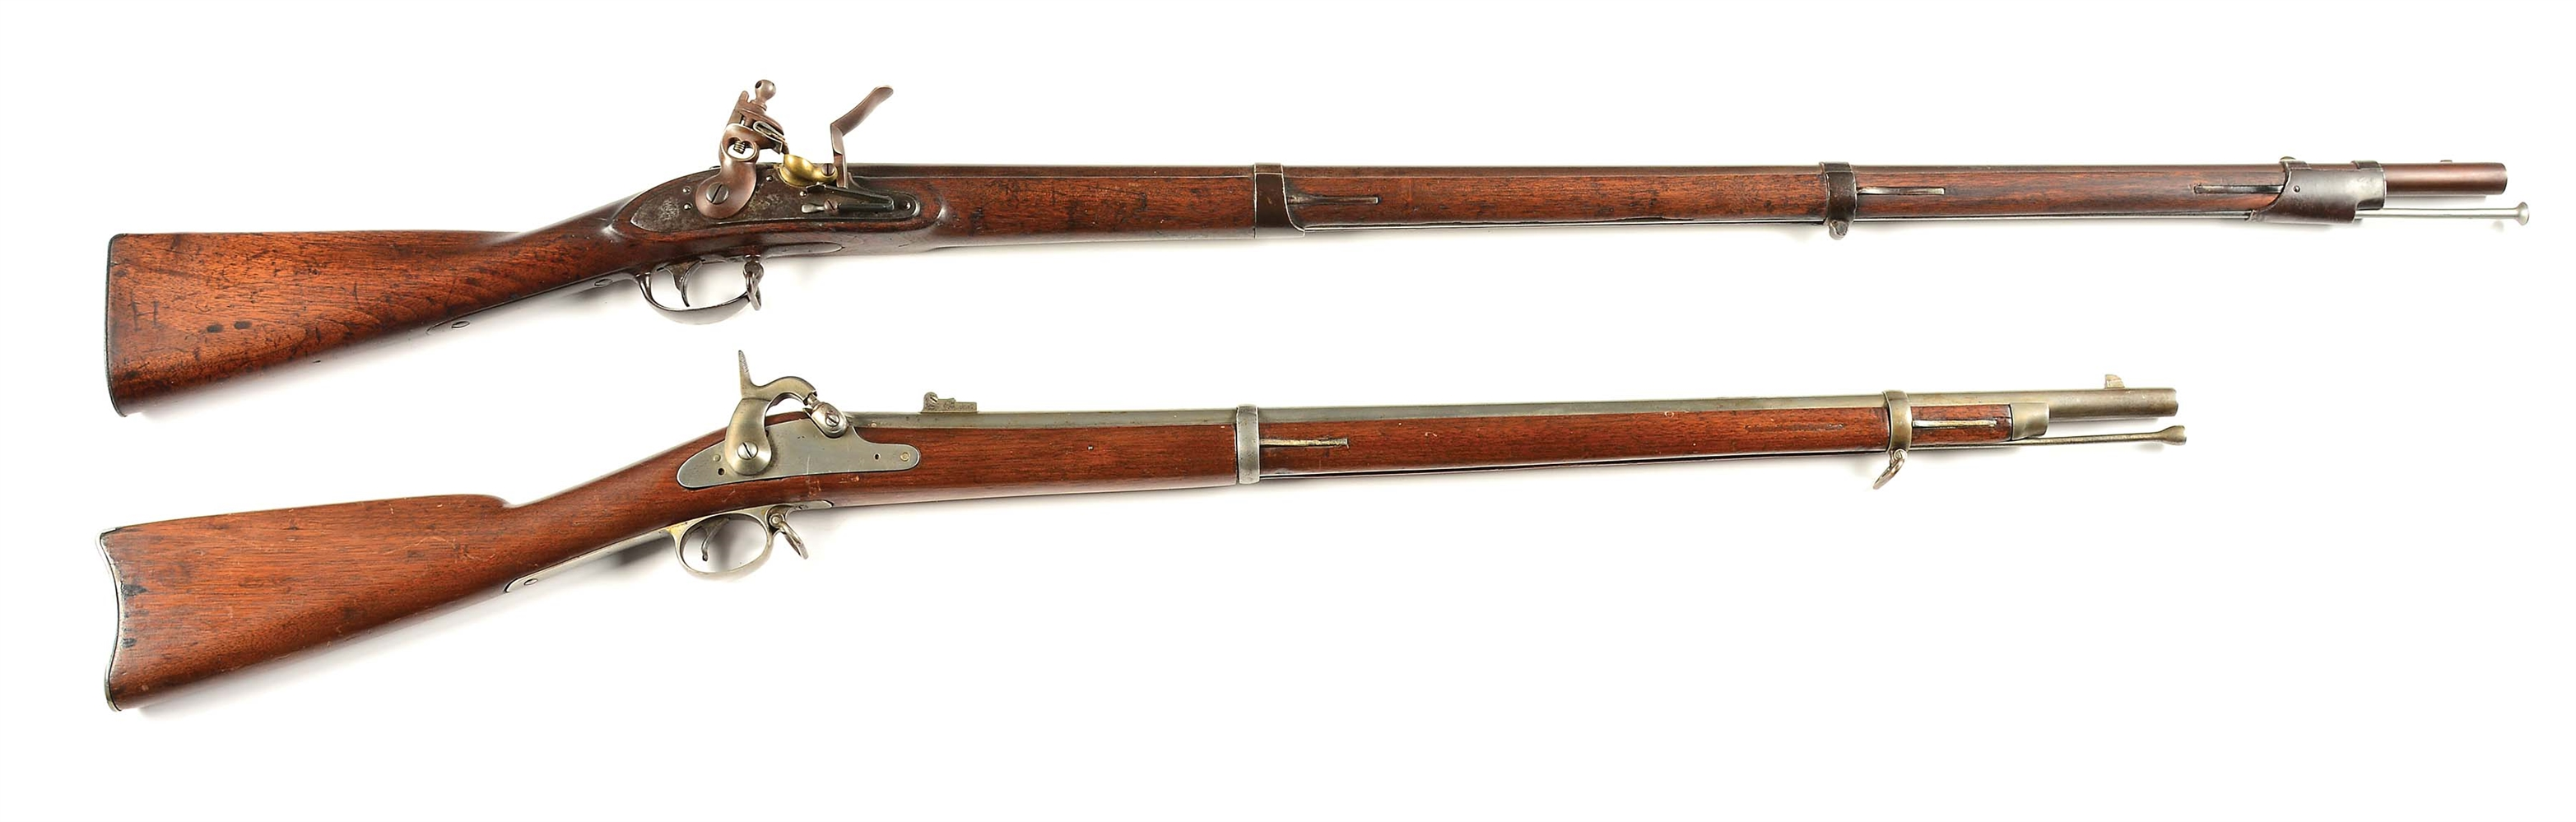 (A) LOT OF 2: SPRINGFIELD FLINTLOCK AND PERCUSSION RIFLES.